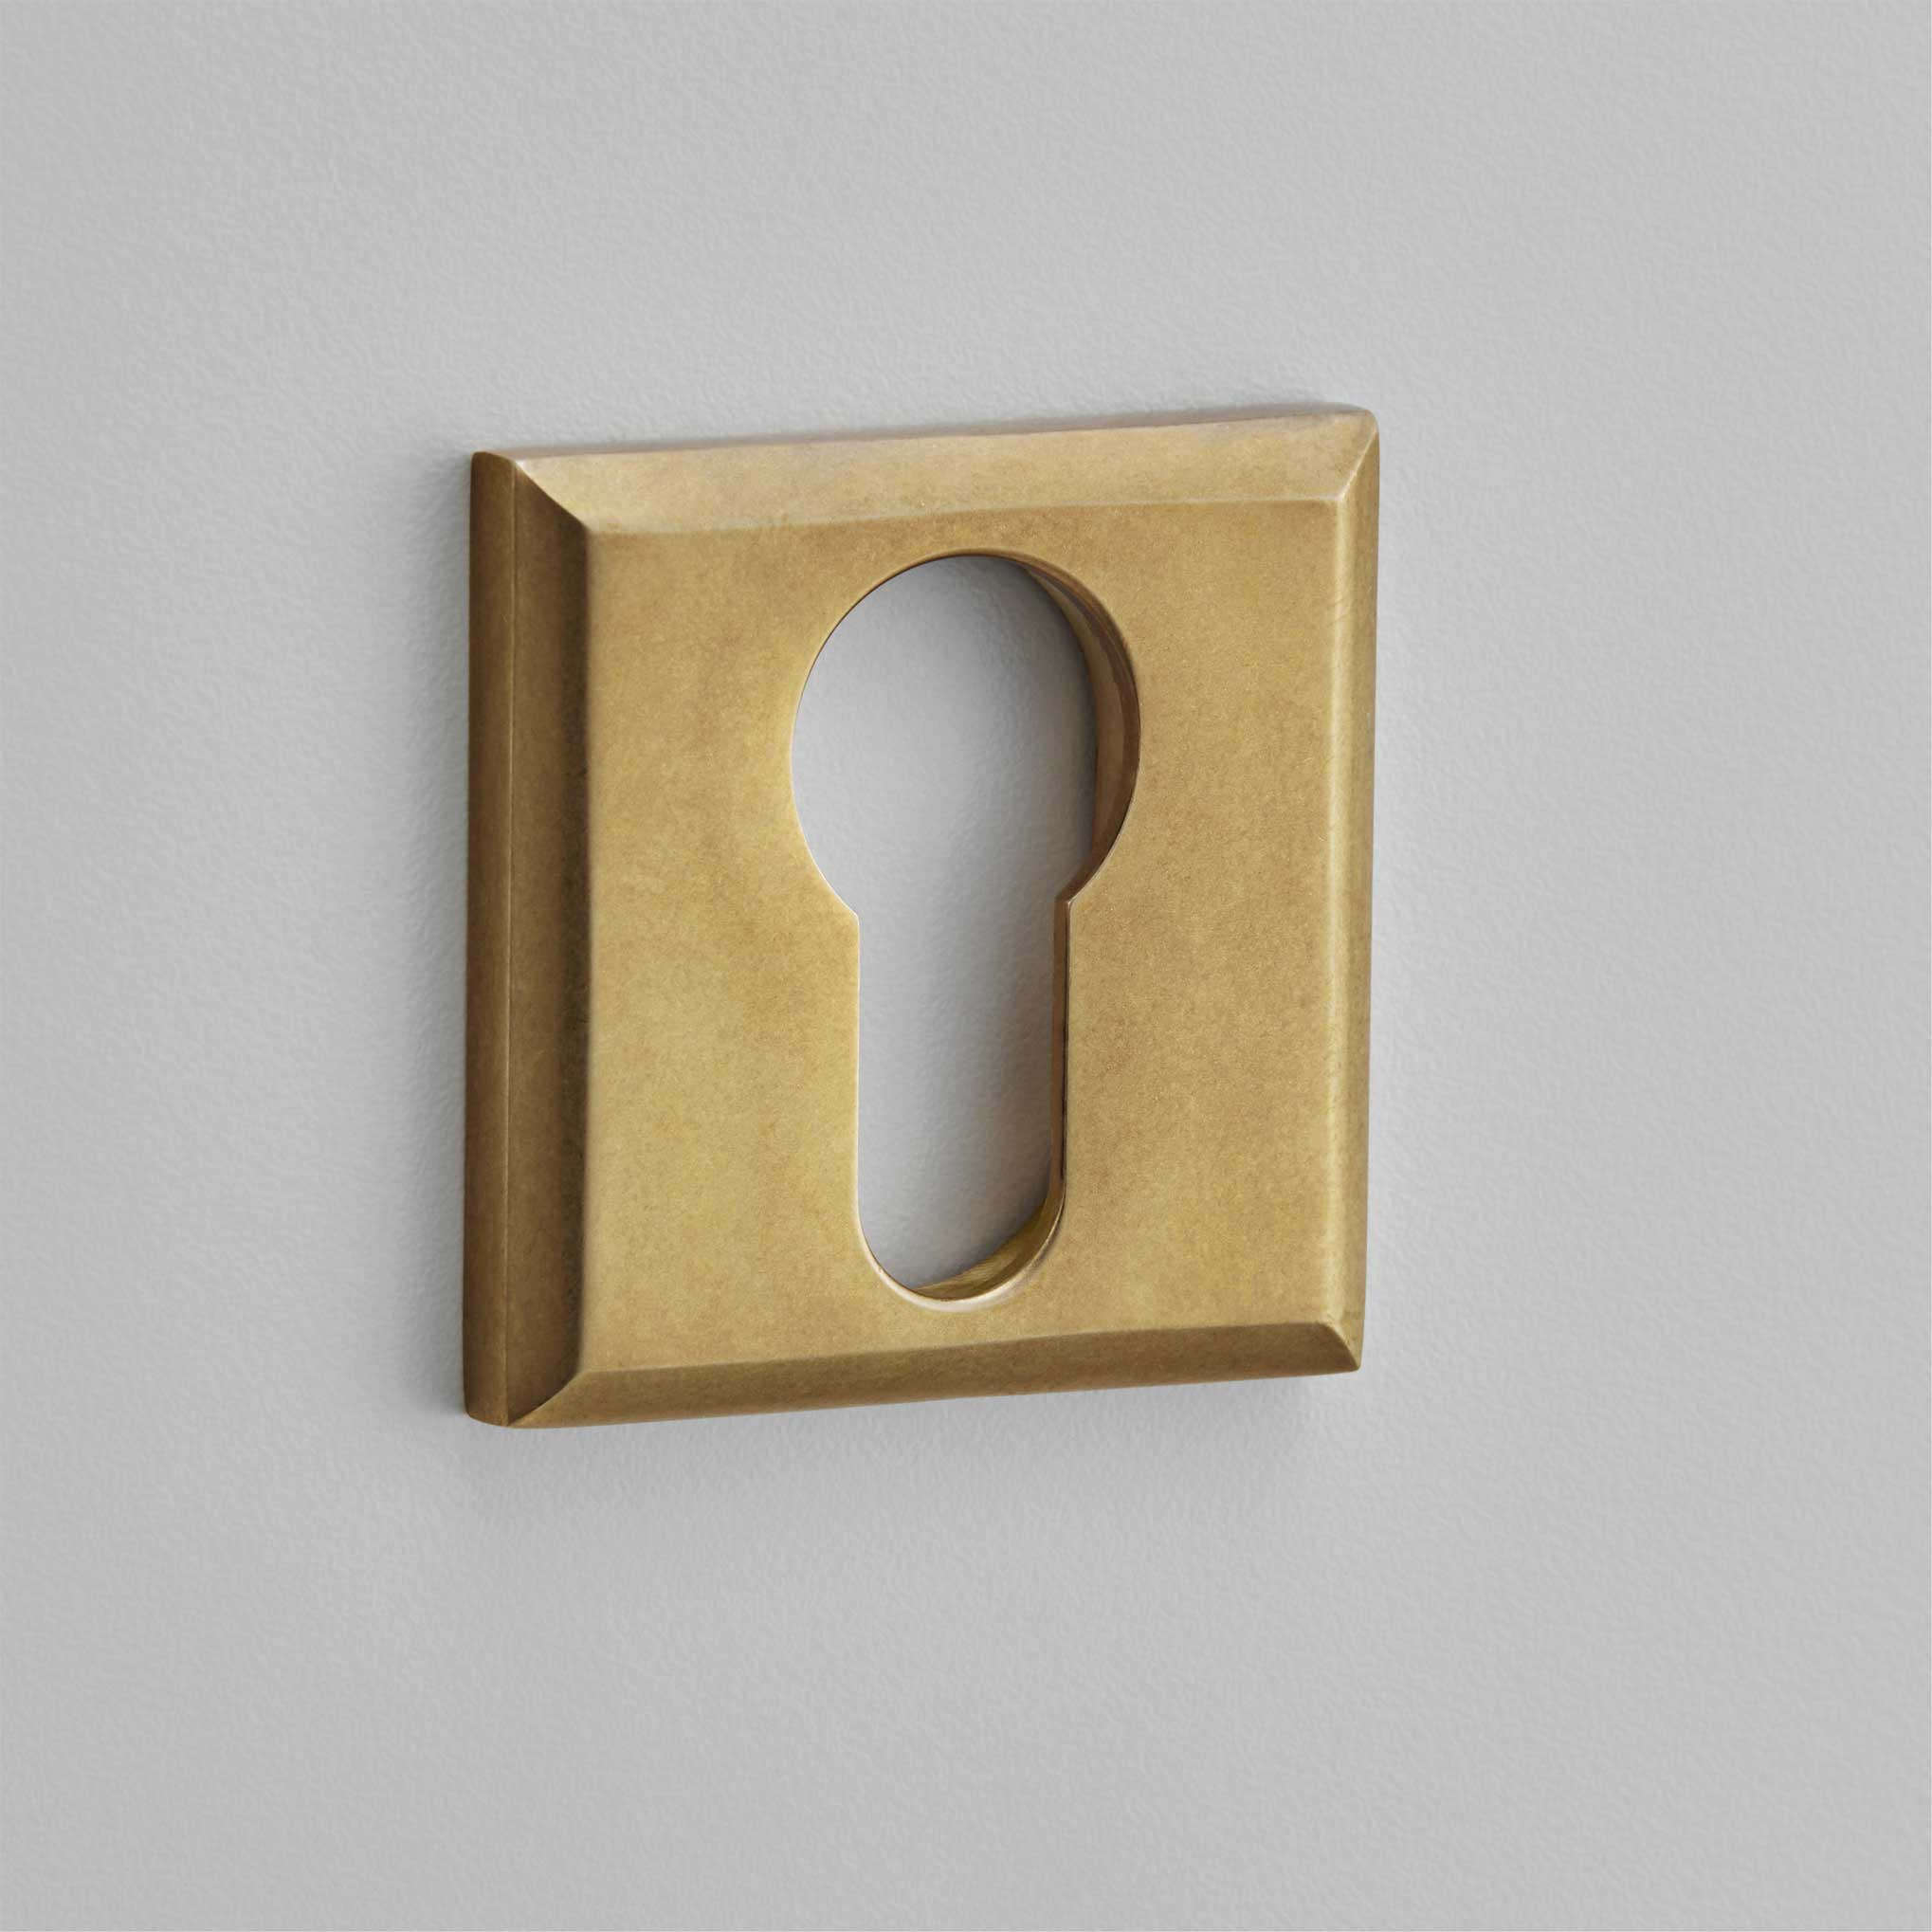 Square Pillow Escutcheon